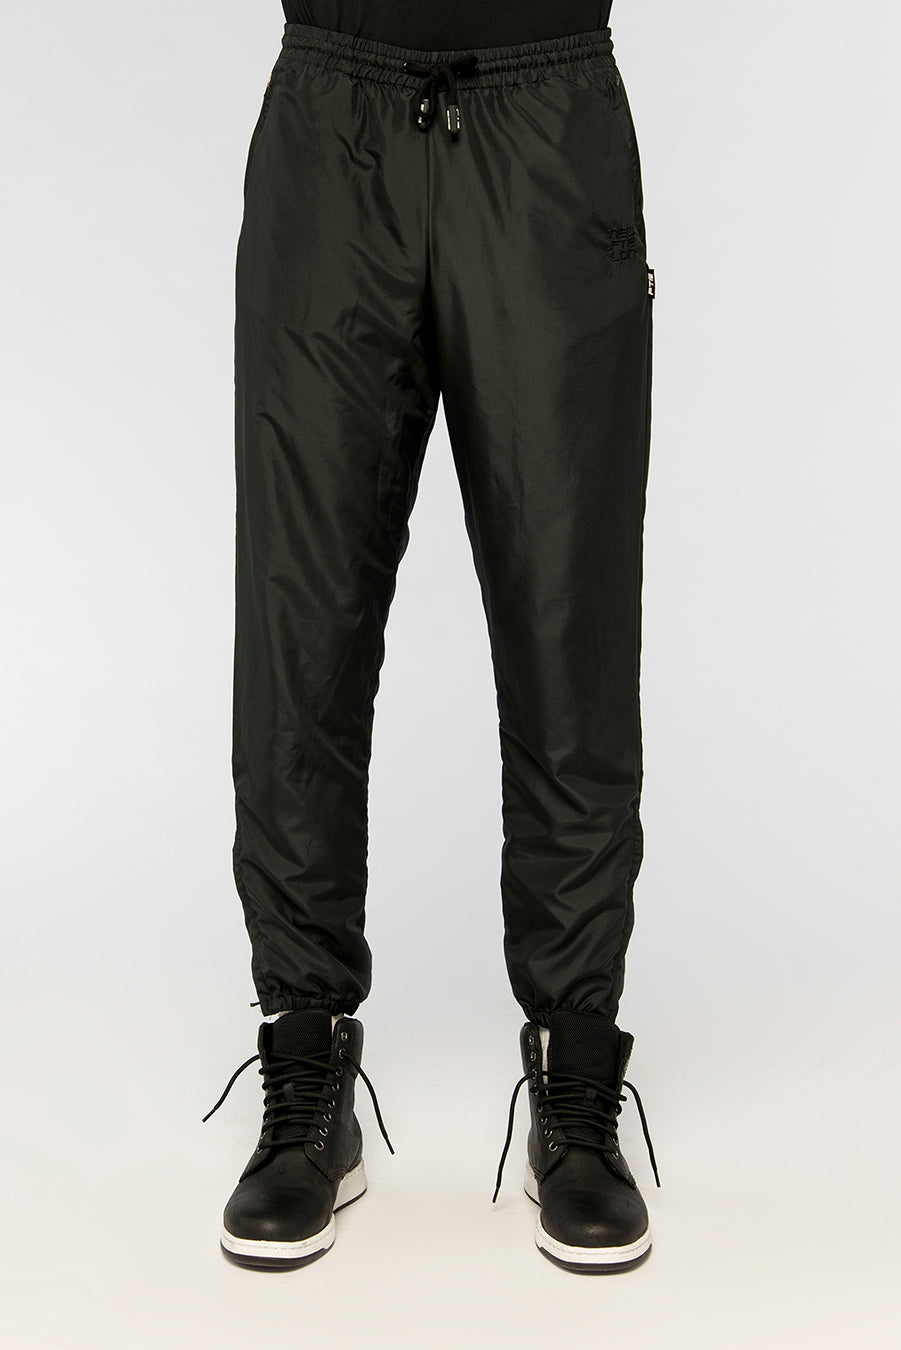 new_future_london_racer_logo_plain_joggers_black_logo_-1.jpg